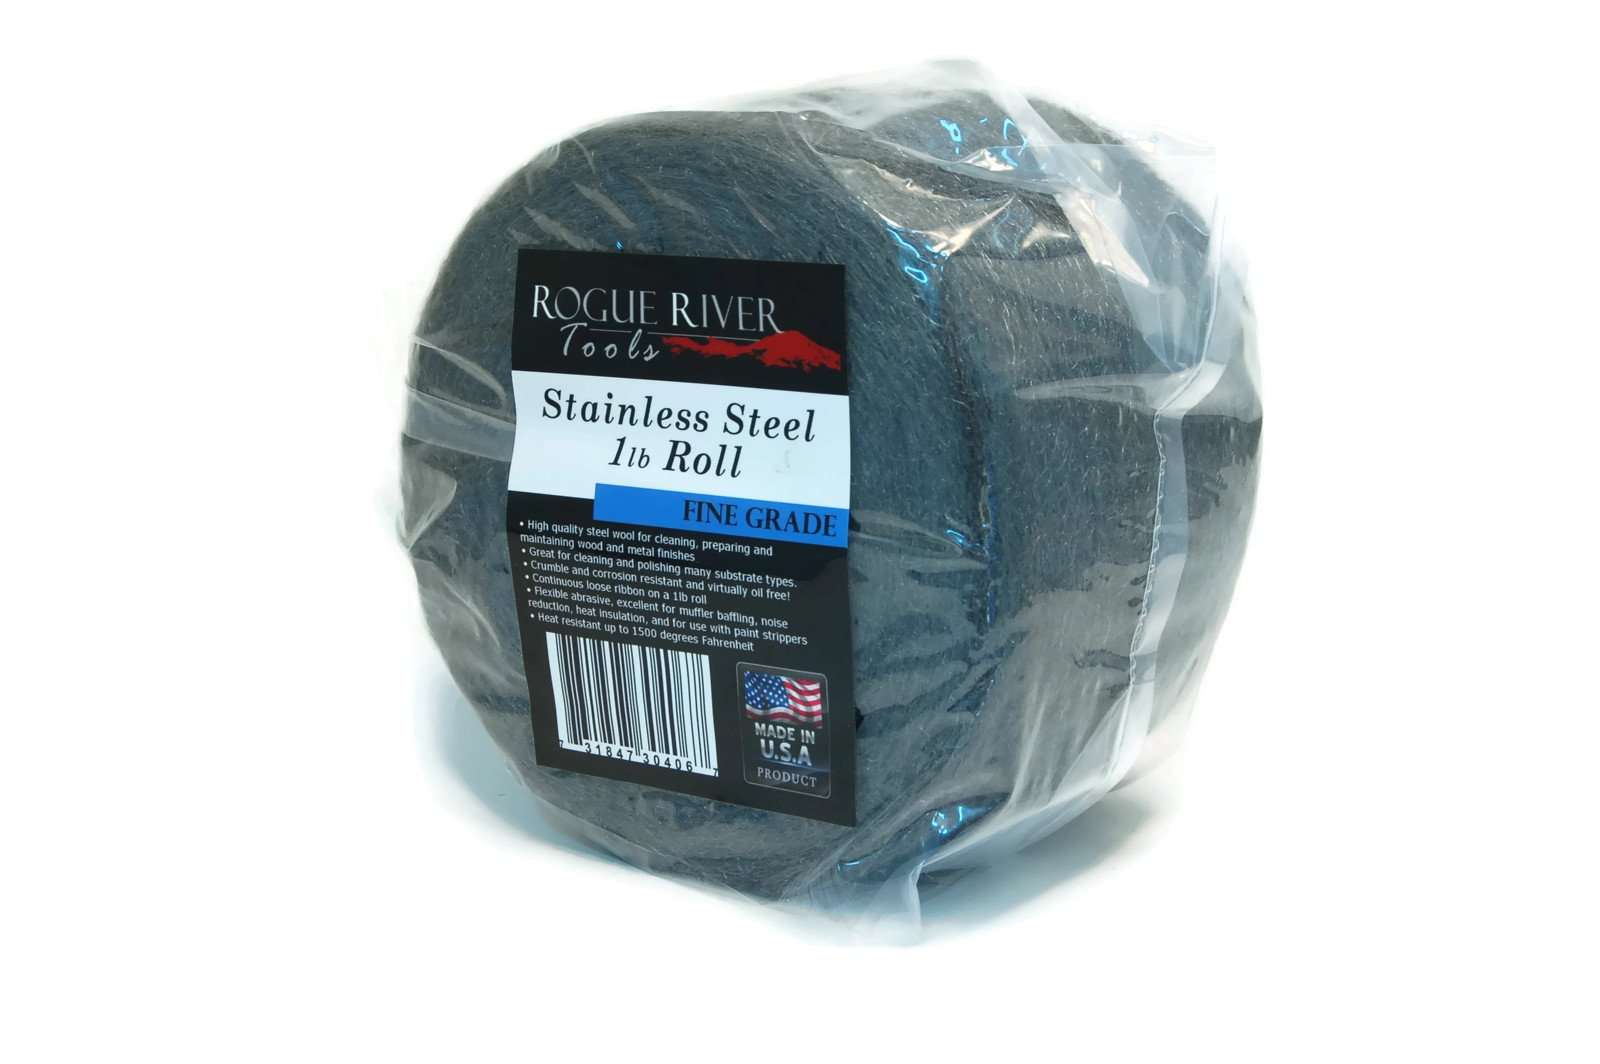 Rogue River Tools Stainless Steel Wool 1lb Roll (Fine Grade) - Made in USA! by Rogue River Tools